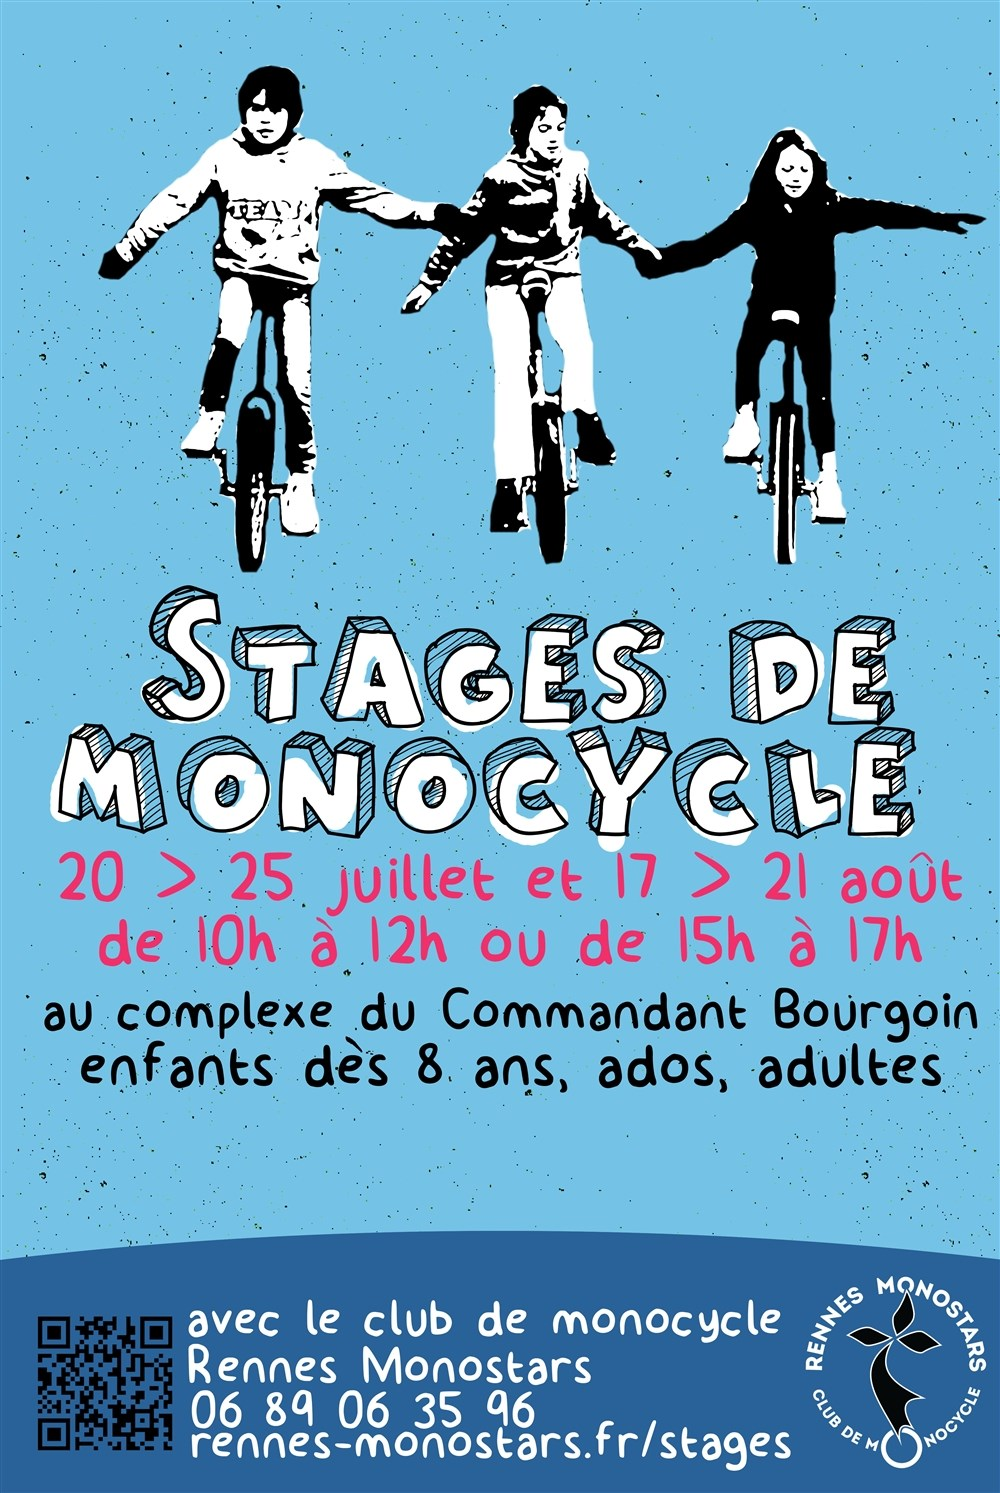 Stage de monocycle